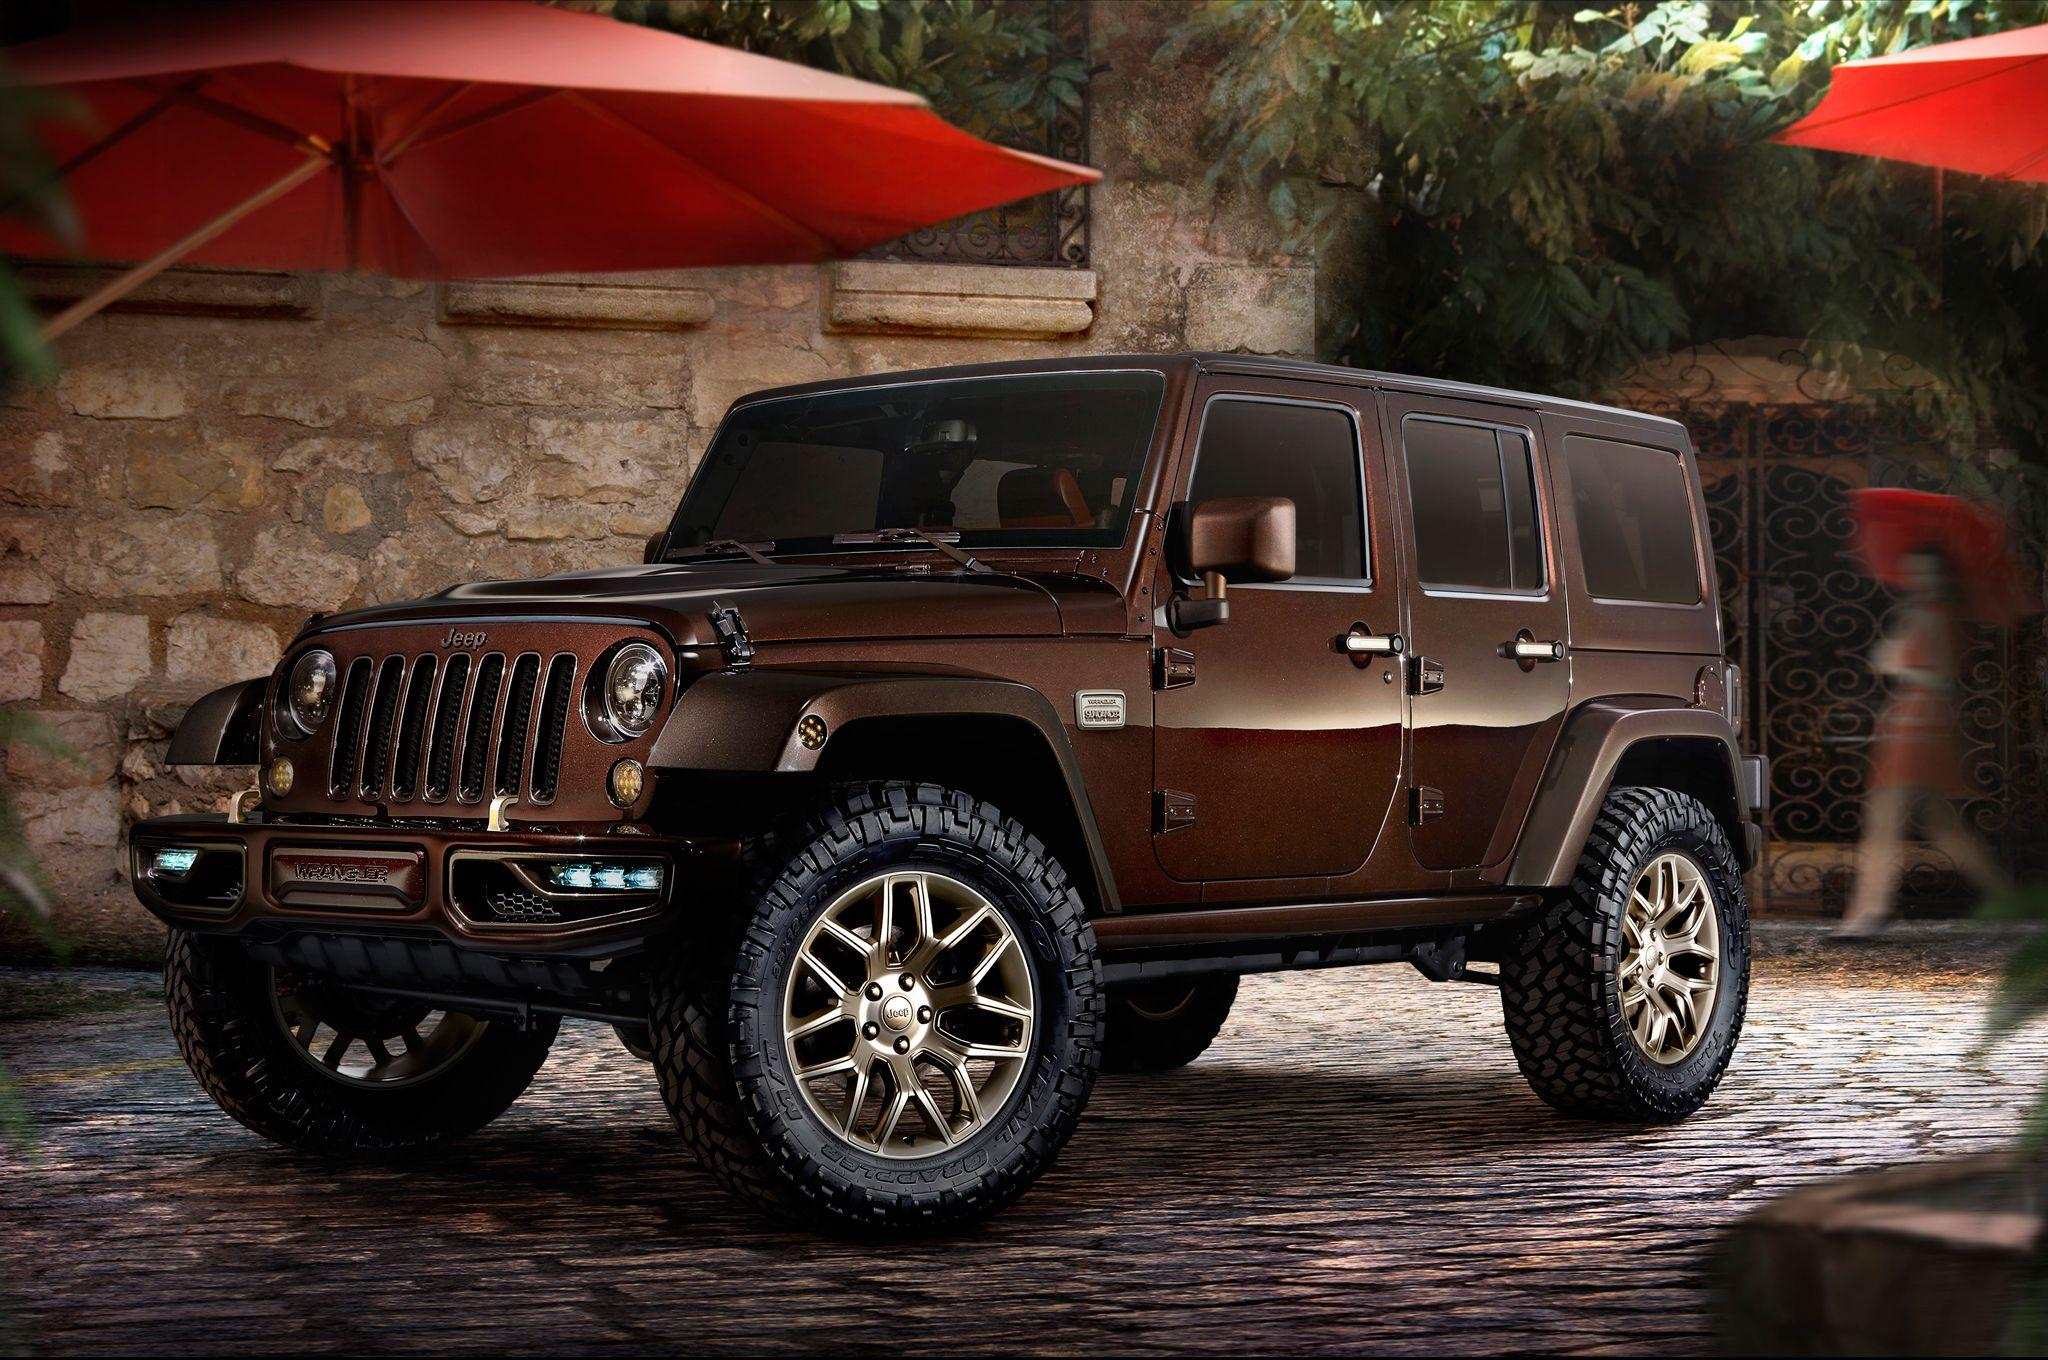 2018 Jeep Wrangler HD Wallpapers